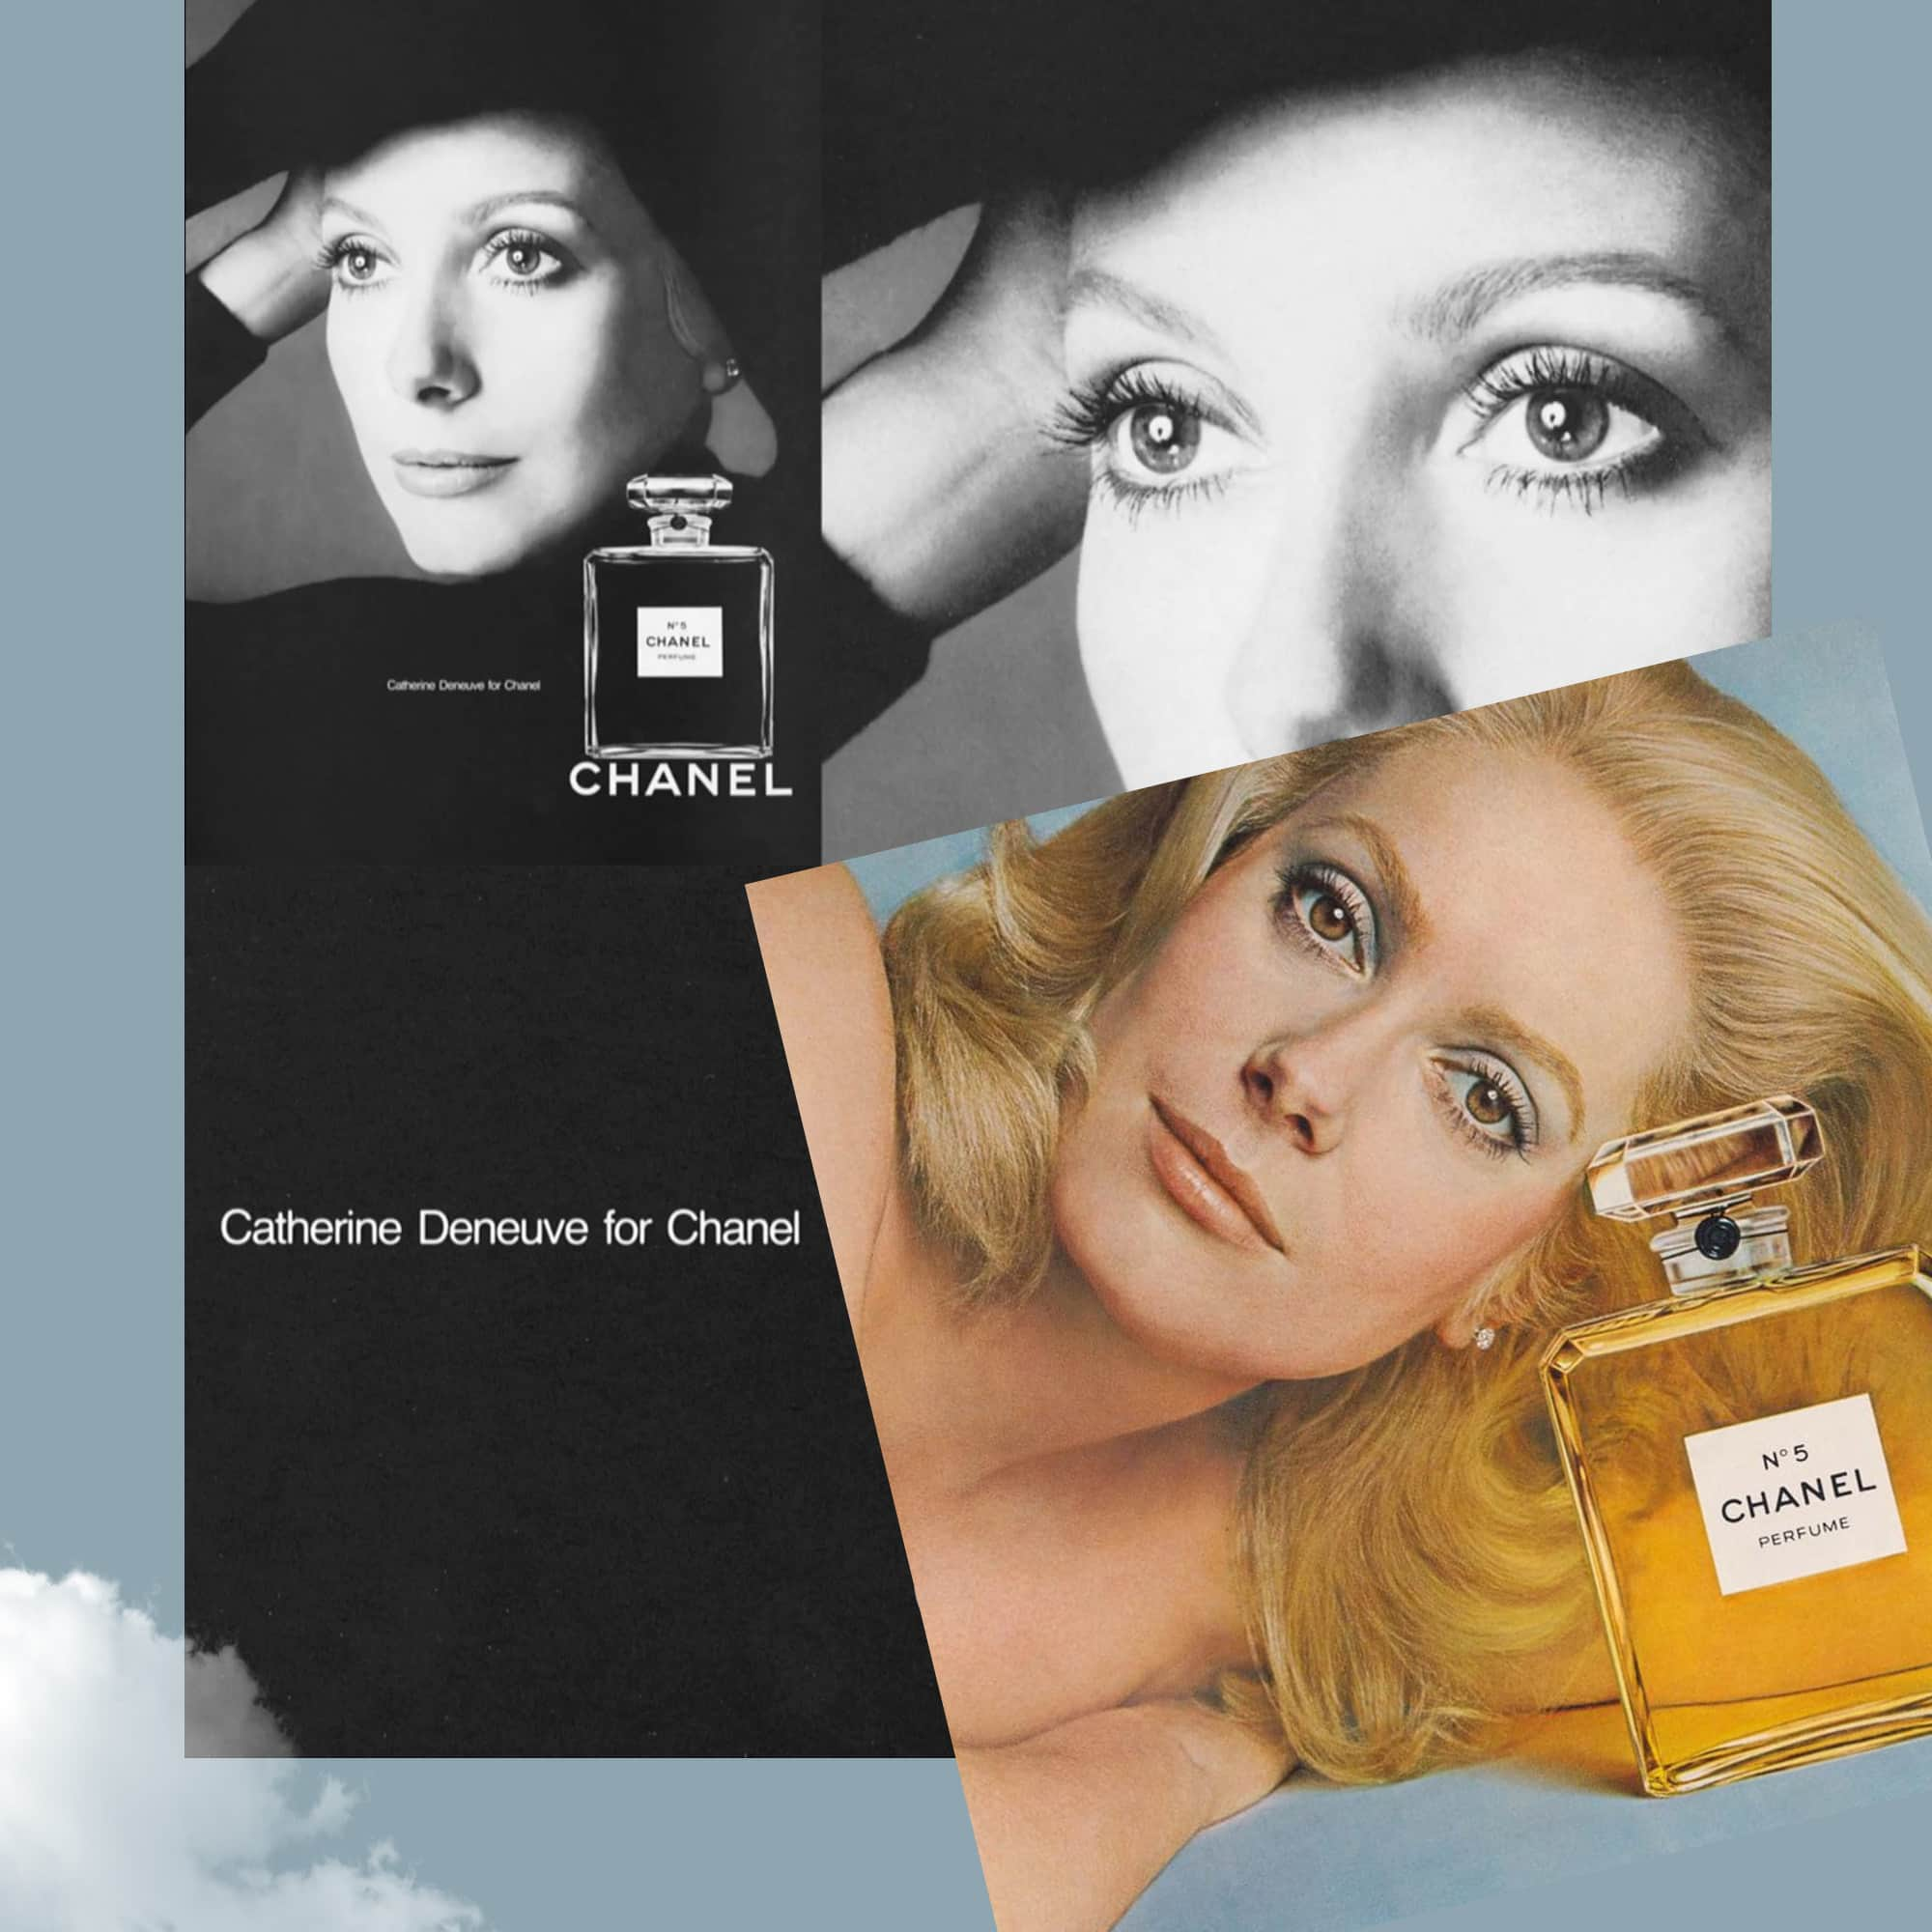 CHANEL 5 perfume - Tresors INPI - Catherine Deneuve for CHANEL by RUNWAY MAGAZINE